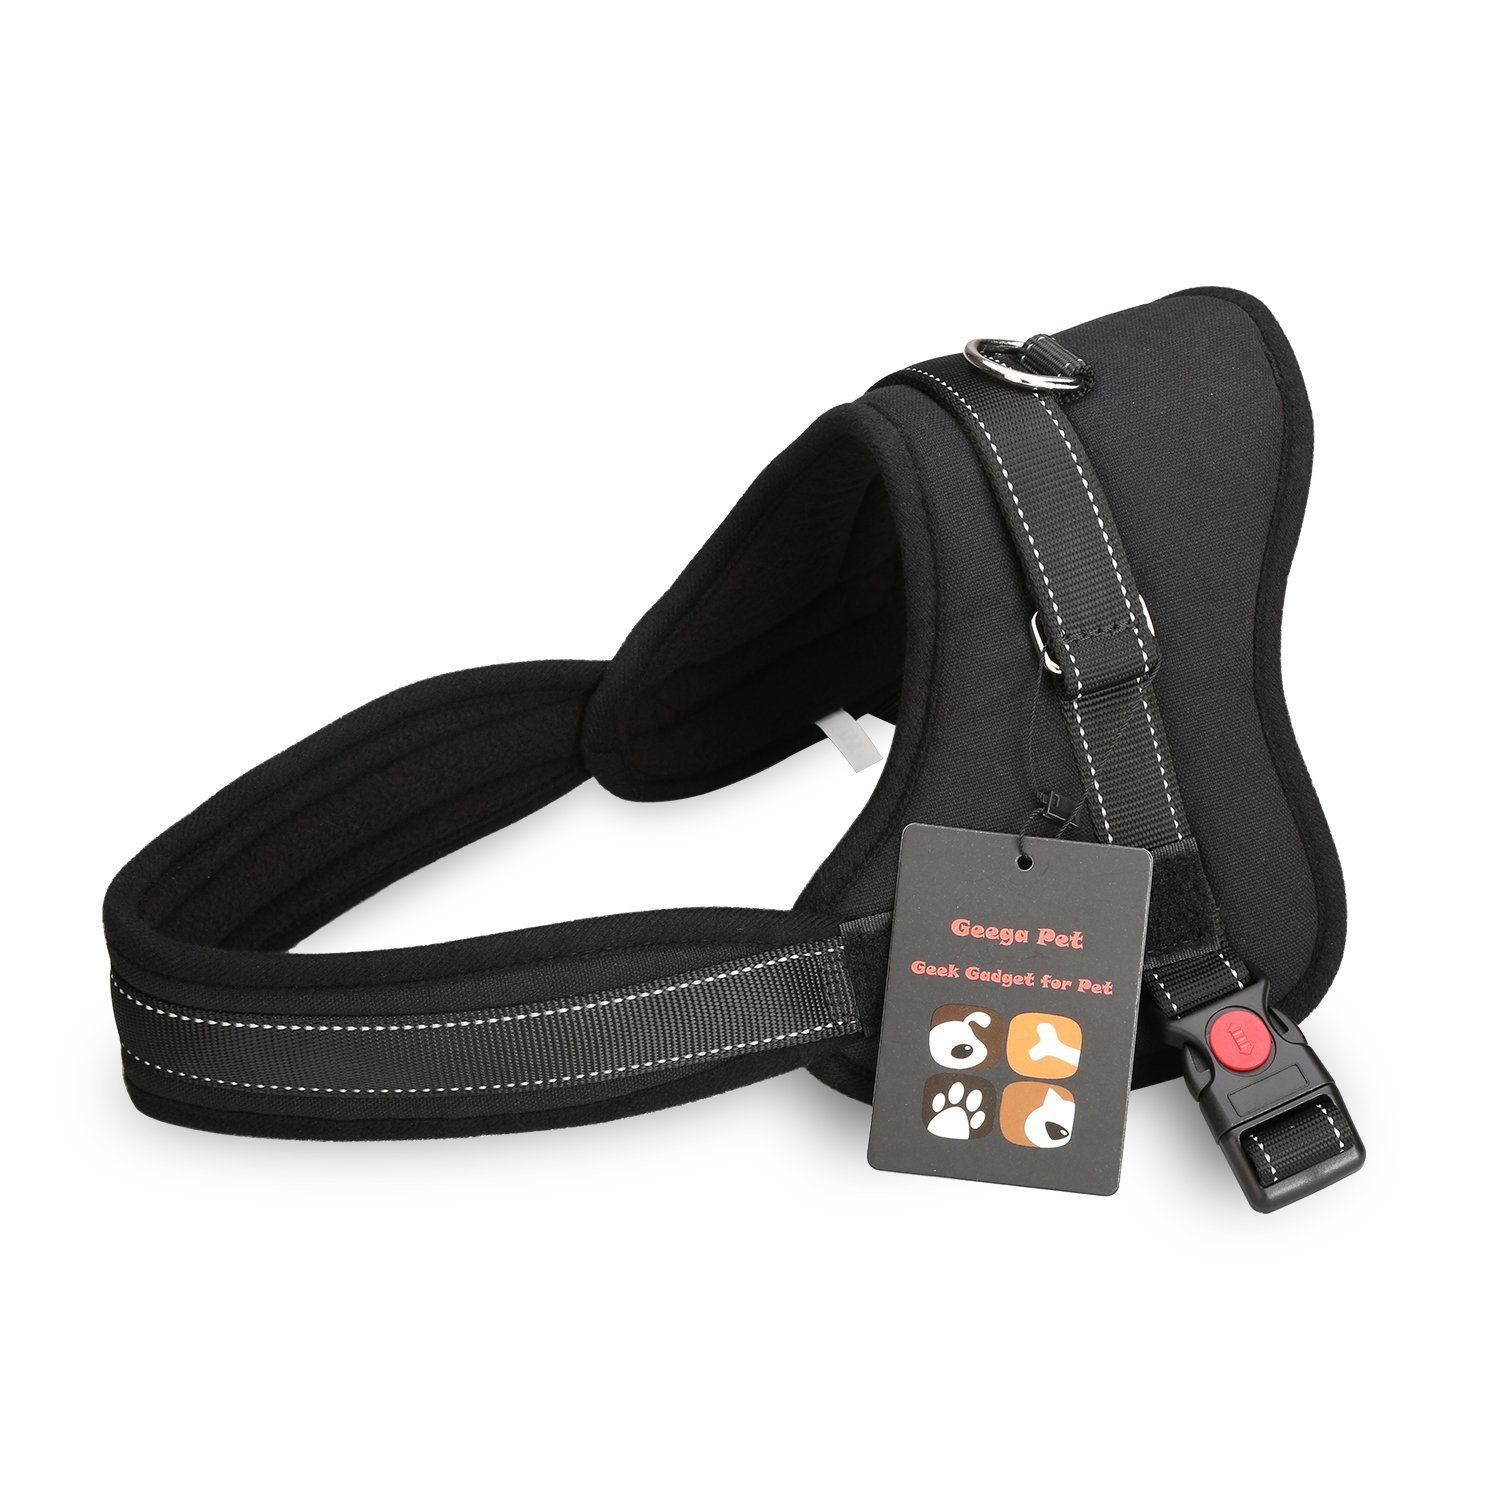 Dog Harness,Geega Pet Dog Body Harness Padded Extra Chest